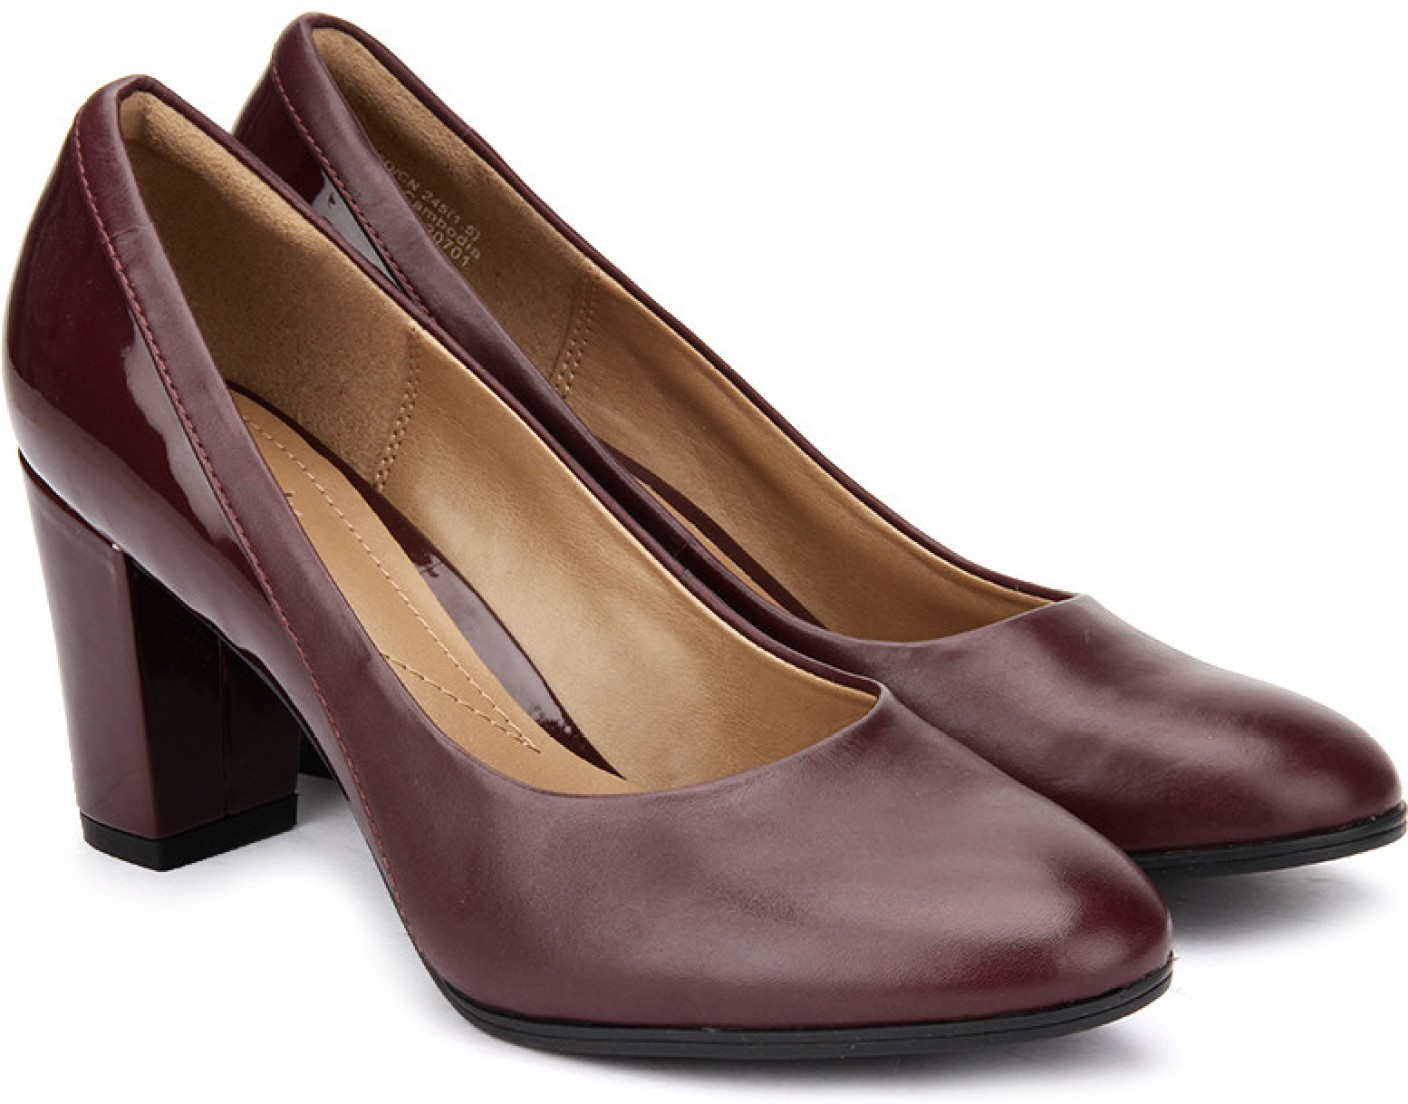 Shop for Clarks shoes online in India. Select from a variety of Clarks formal shoes & casual shoes online at best prices at Metro Shoes. FREE SHIPPING* CASH ON DELIVERY* 30 DAYS RETURN.